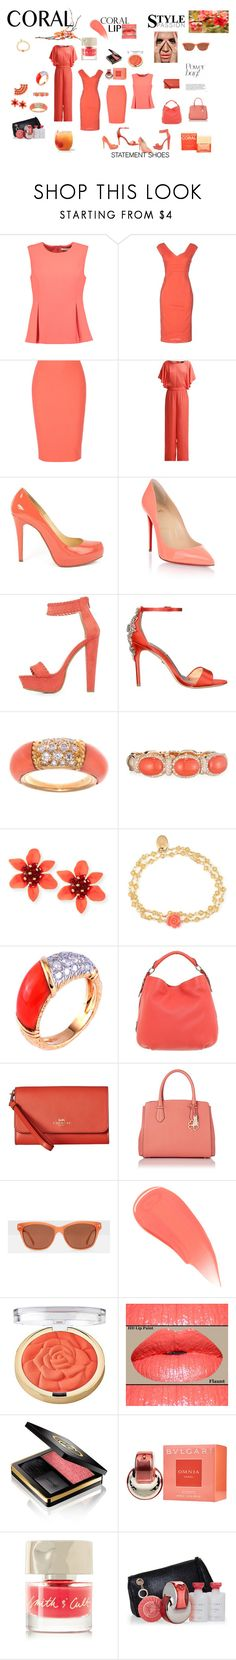 """Coral Fantasy"" by perezbarrios on Polyvore featuring Diane Von Furstenberg, Twin-Set, Elizabeth and James, VILA, Christian Louboutin, Charlotte Russe, Badgley Mischka, Van Cleef & Arpels, Verdi and OSCAR Bijoux"